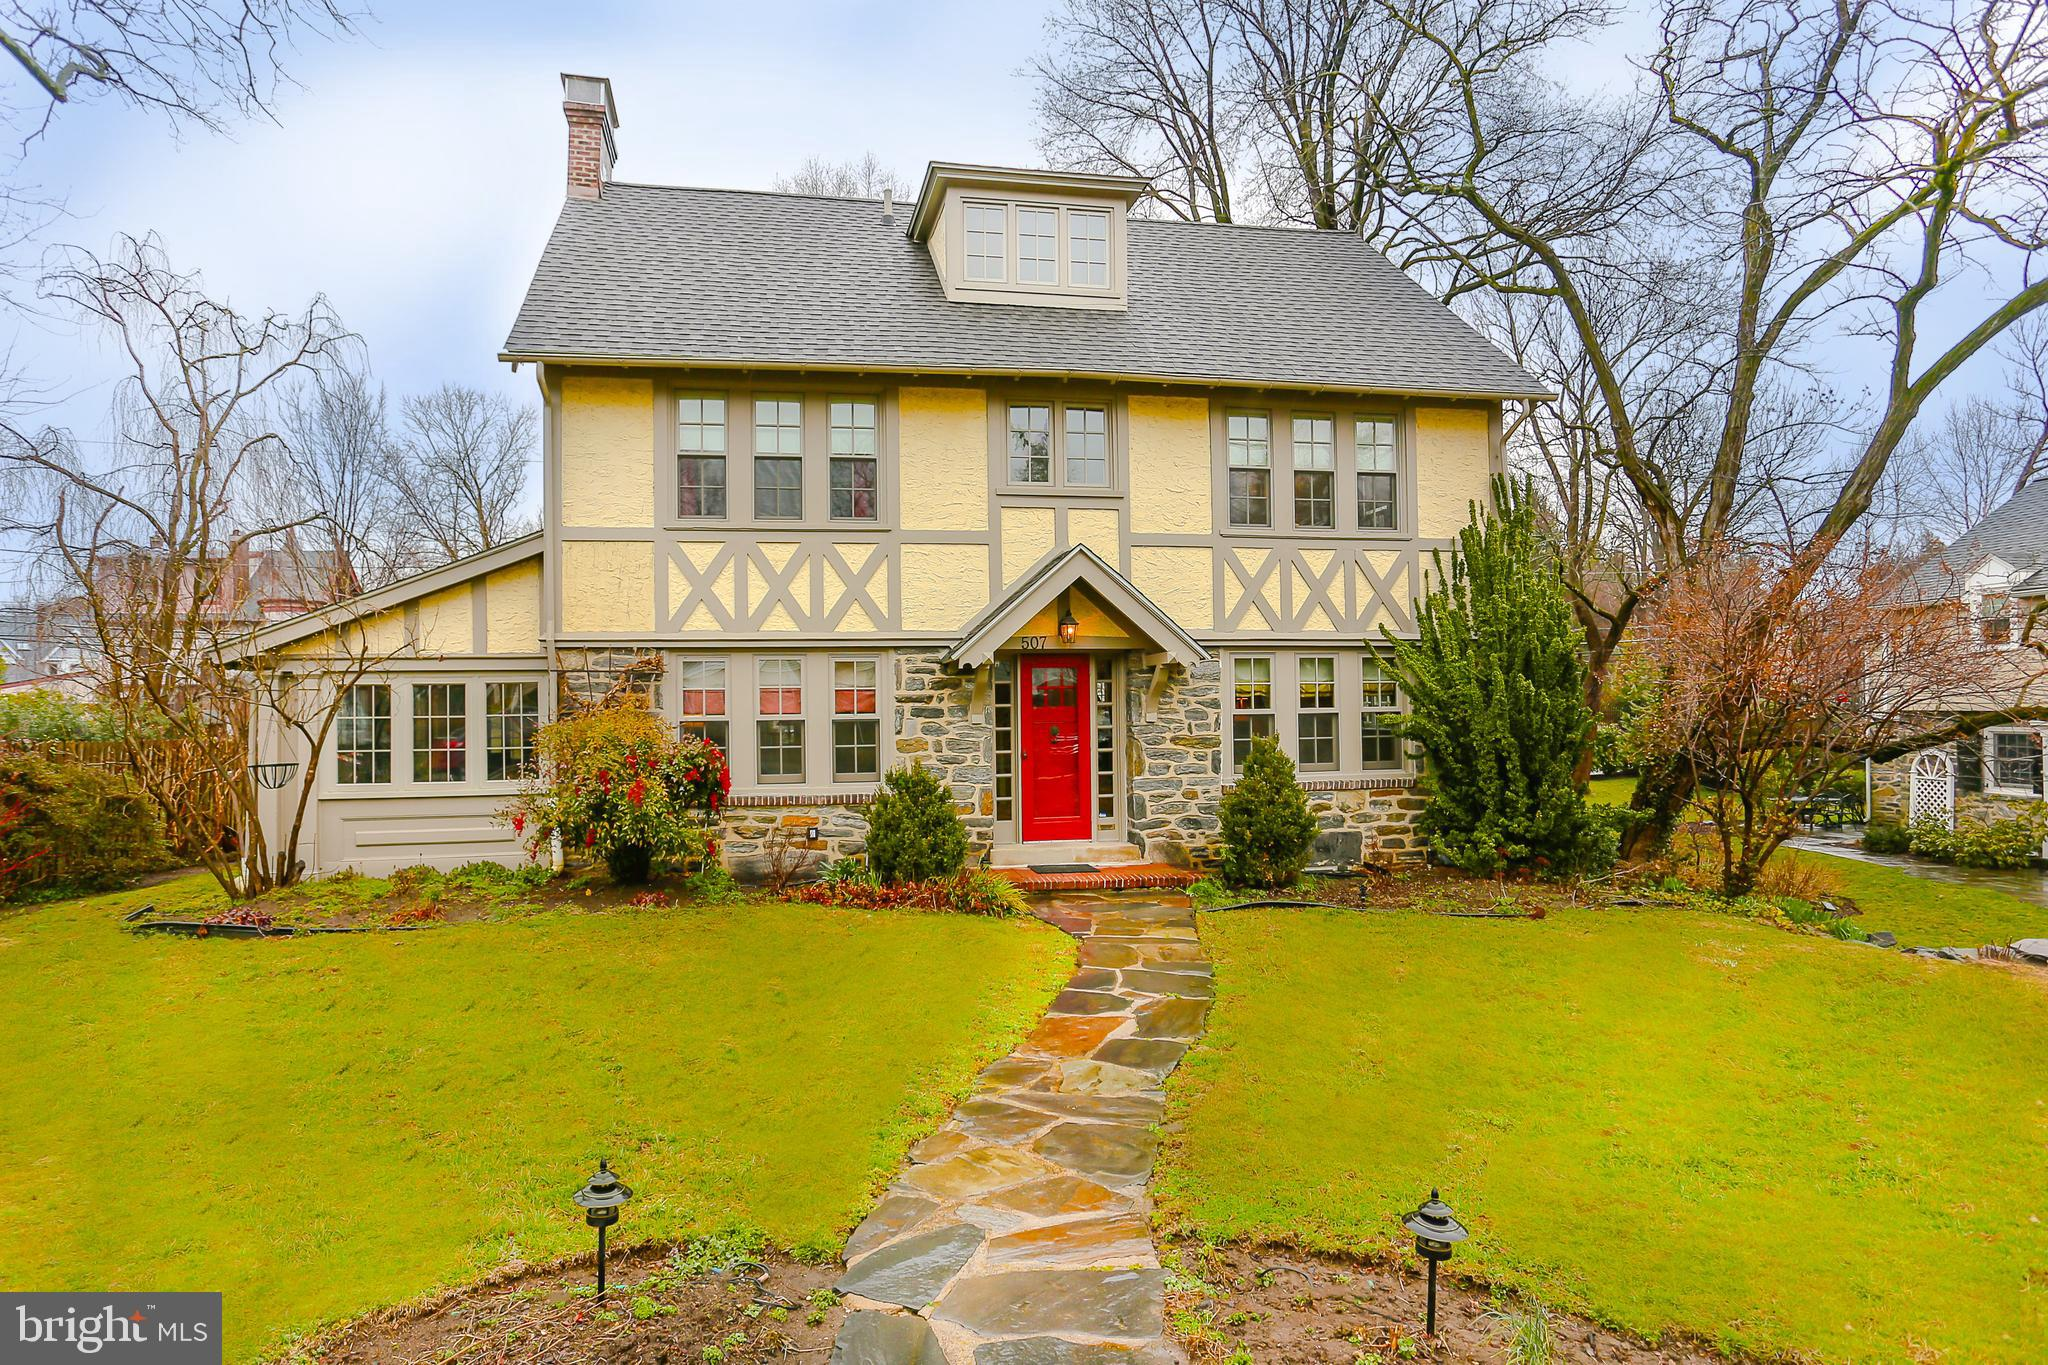 507 BAIRD ROAD, MERION STATION, PA 19066